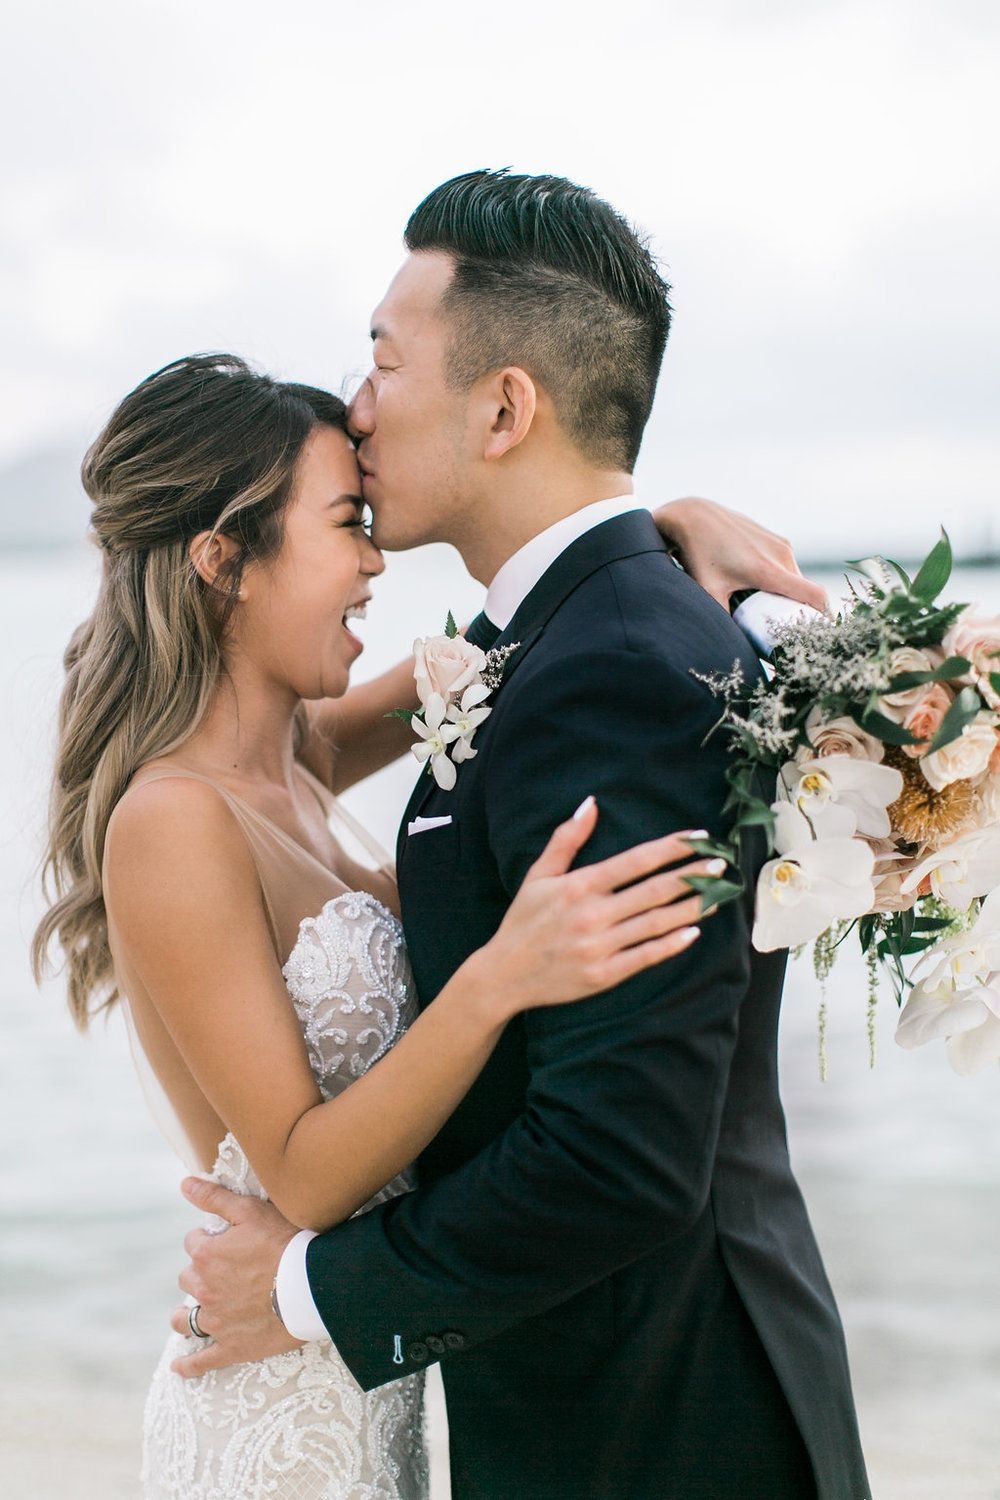 Simple wedding dresses for eloping  The happiness you feel after marrying the love your life